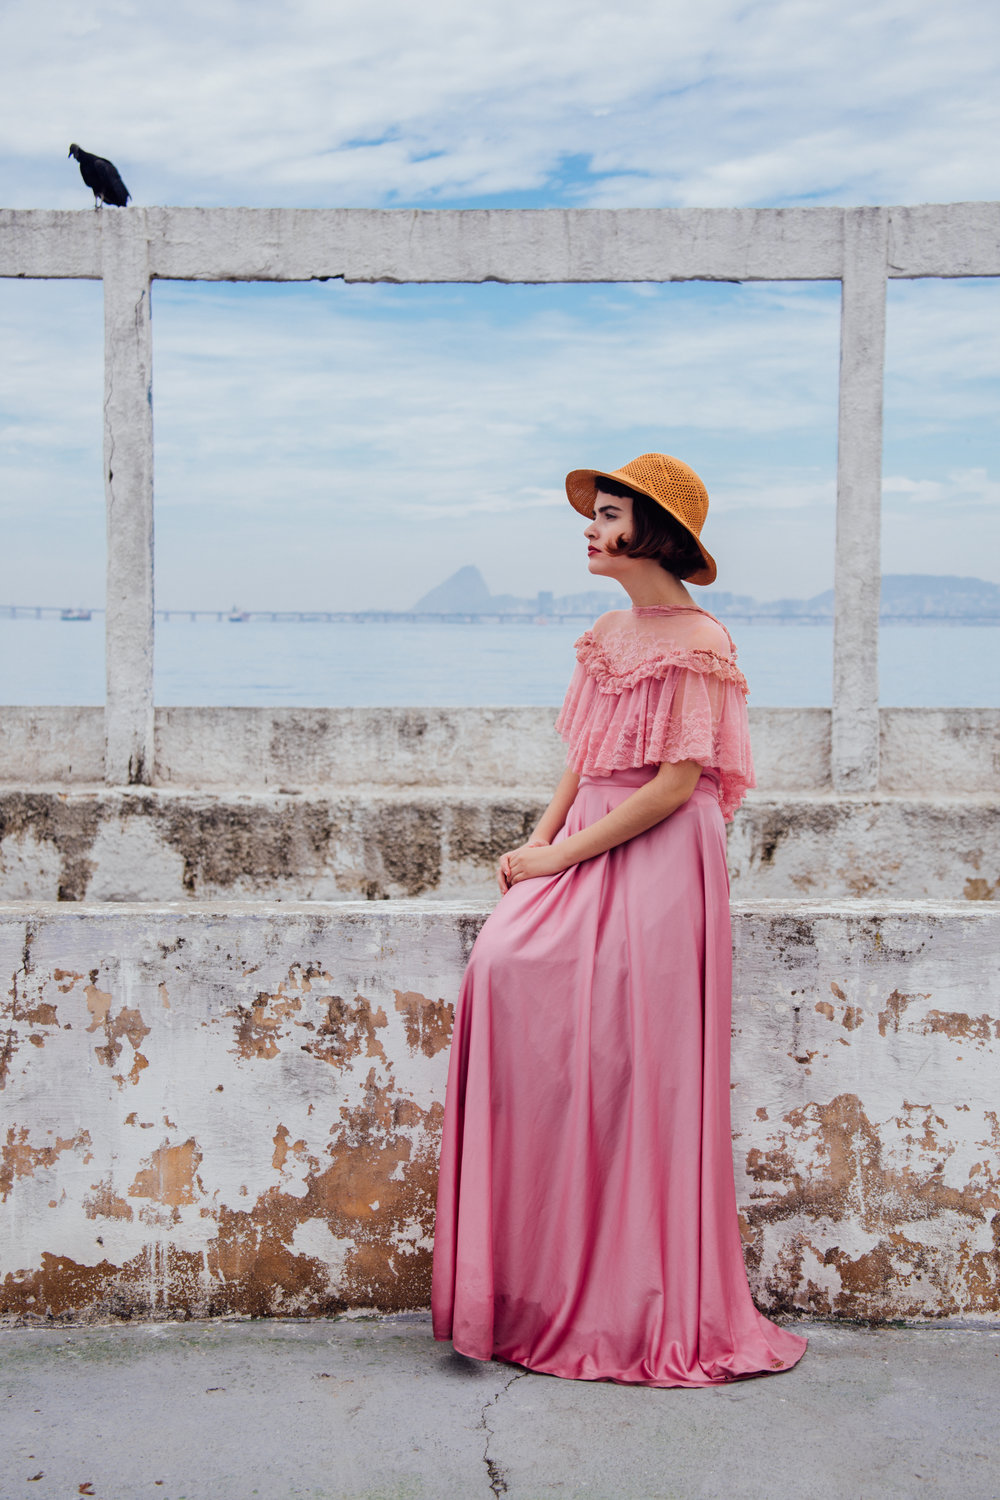 Consciously Connected Travel - CC Journal - Wellness | Why is it so hard to be alone? - Conscious Travel - Solo Travel - Women only travel - Wellness retreats - spiritual retreats - women healing retreats